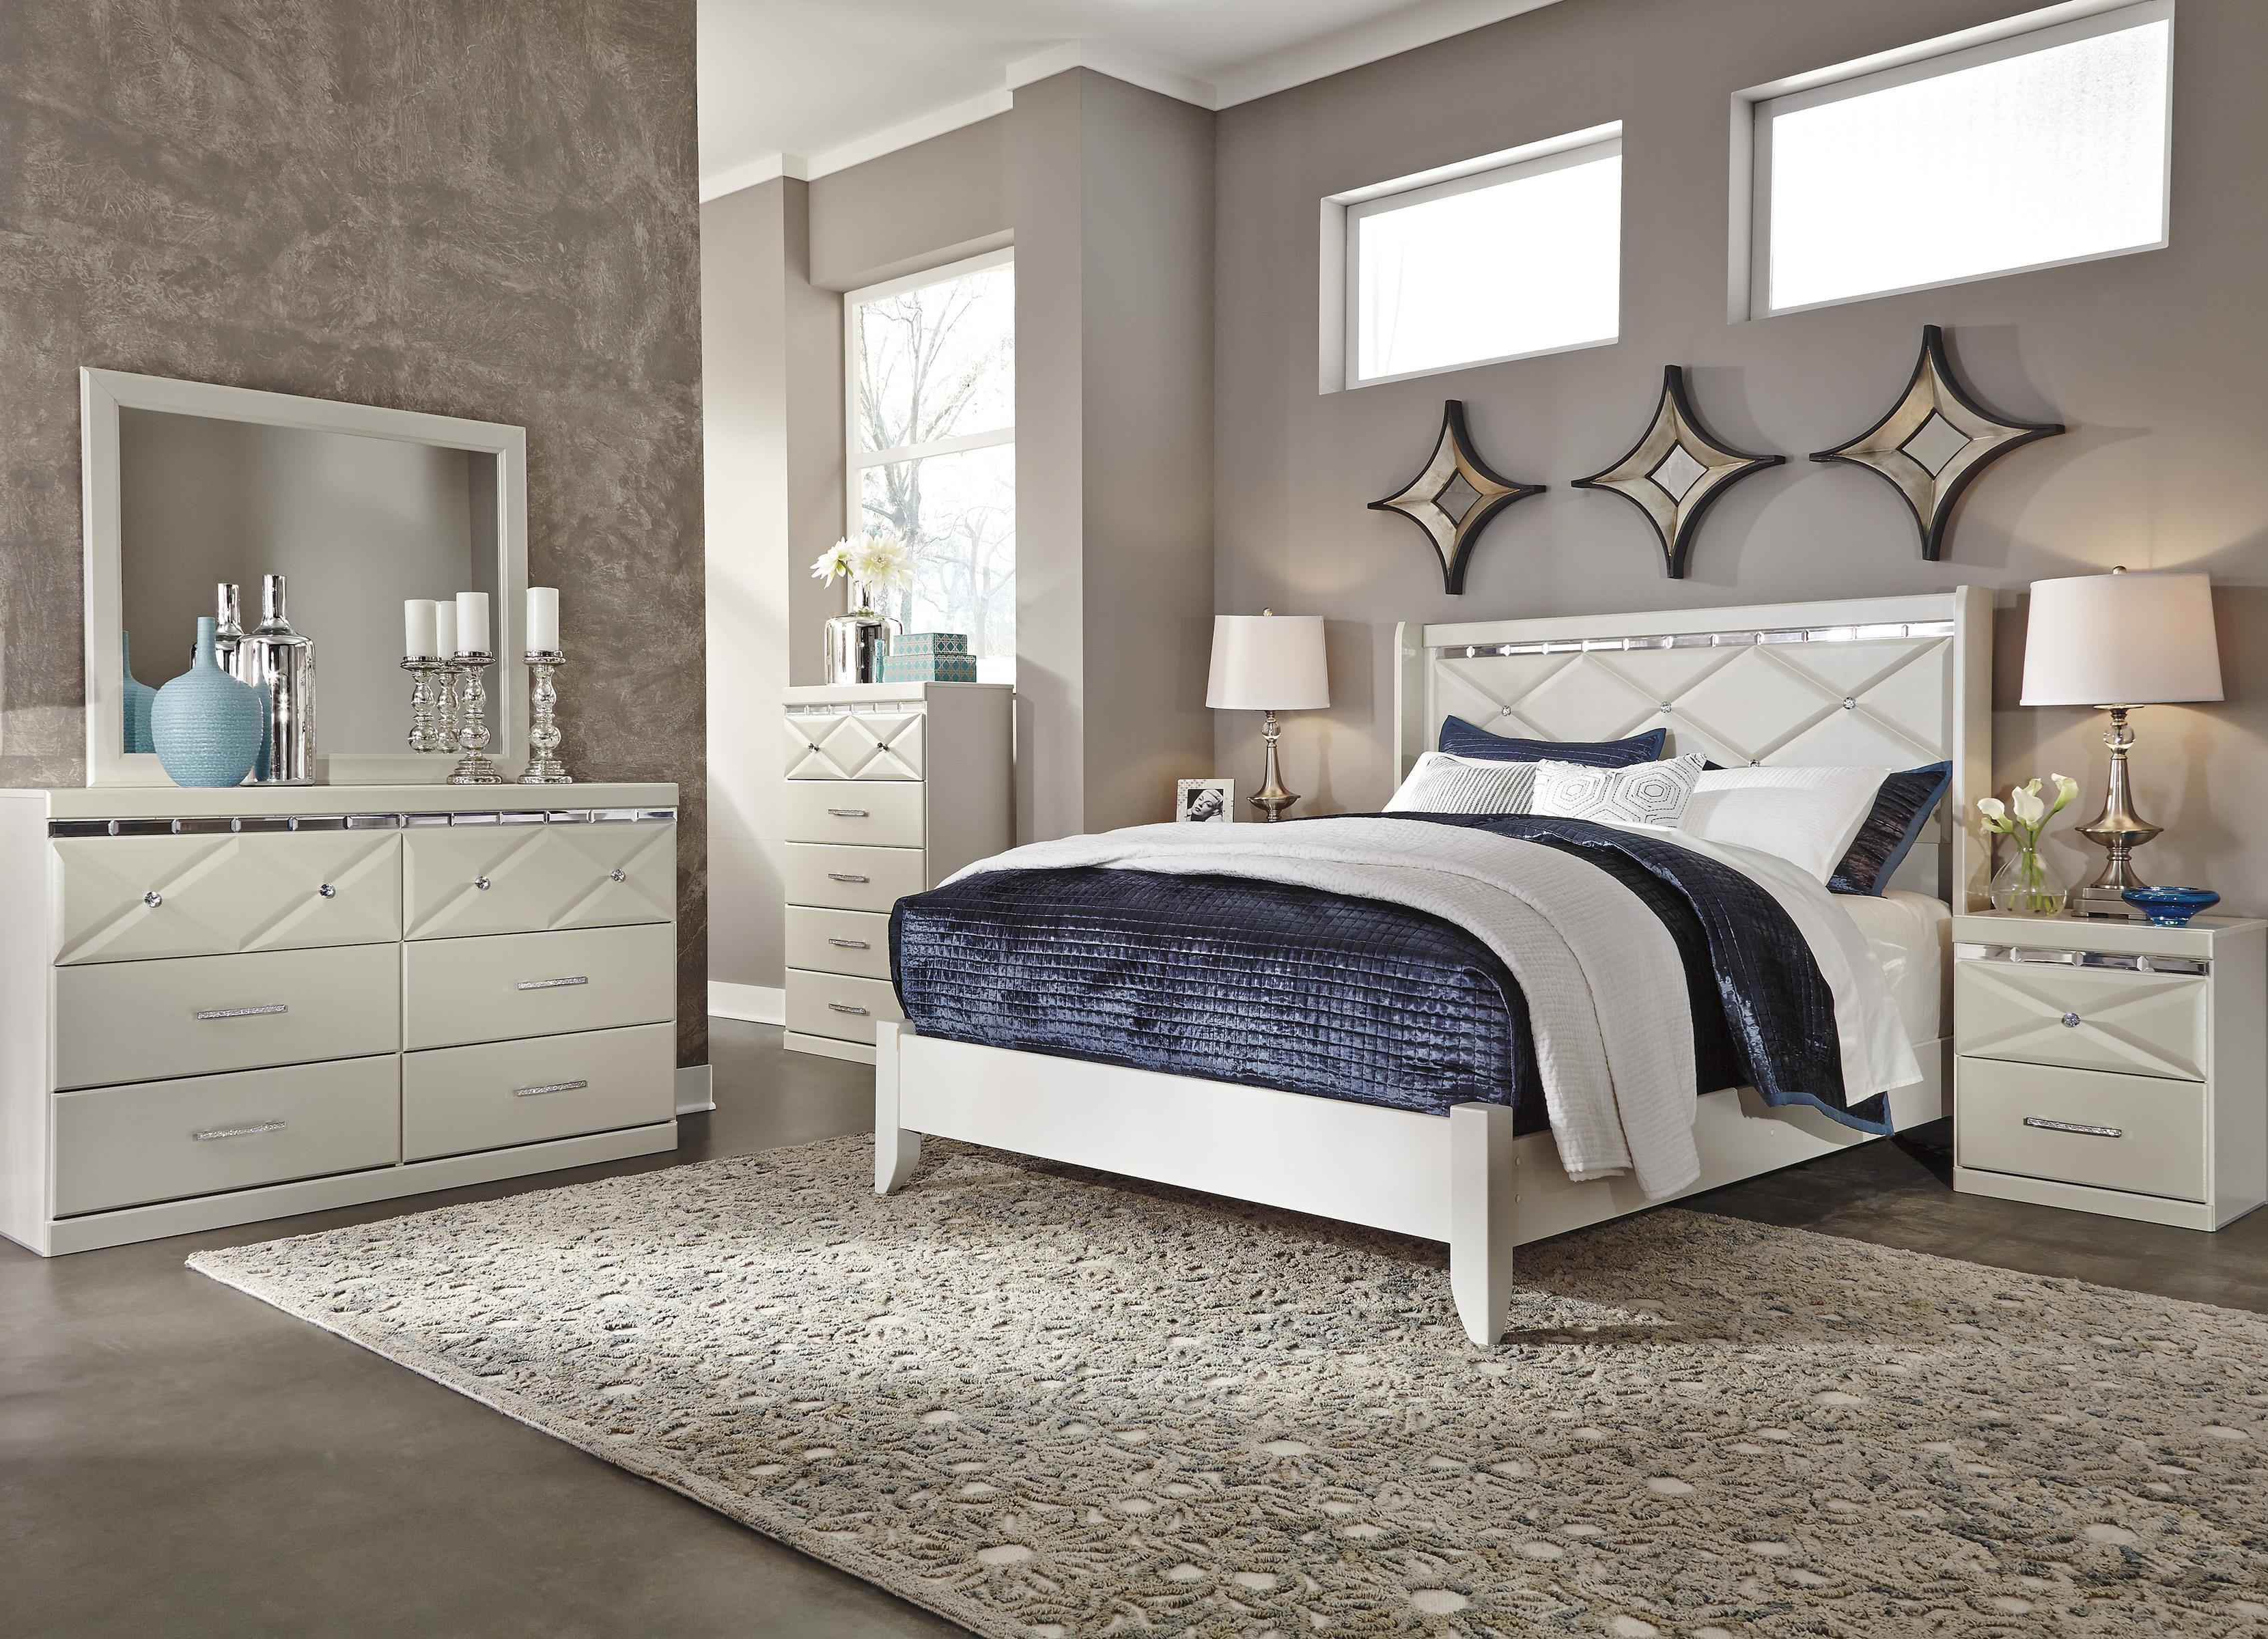 Signature Design by Ashley Dreamur Queen Bedroom Group - Item Number: B351 Q Bedroom Group 1